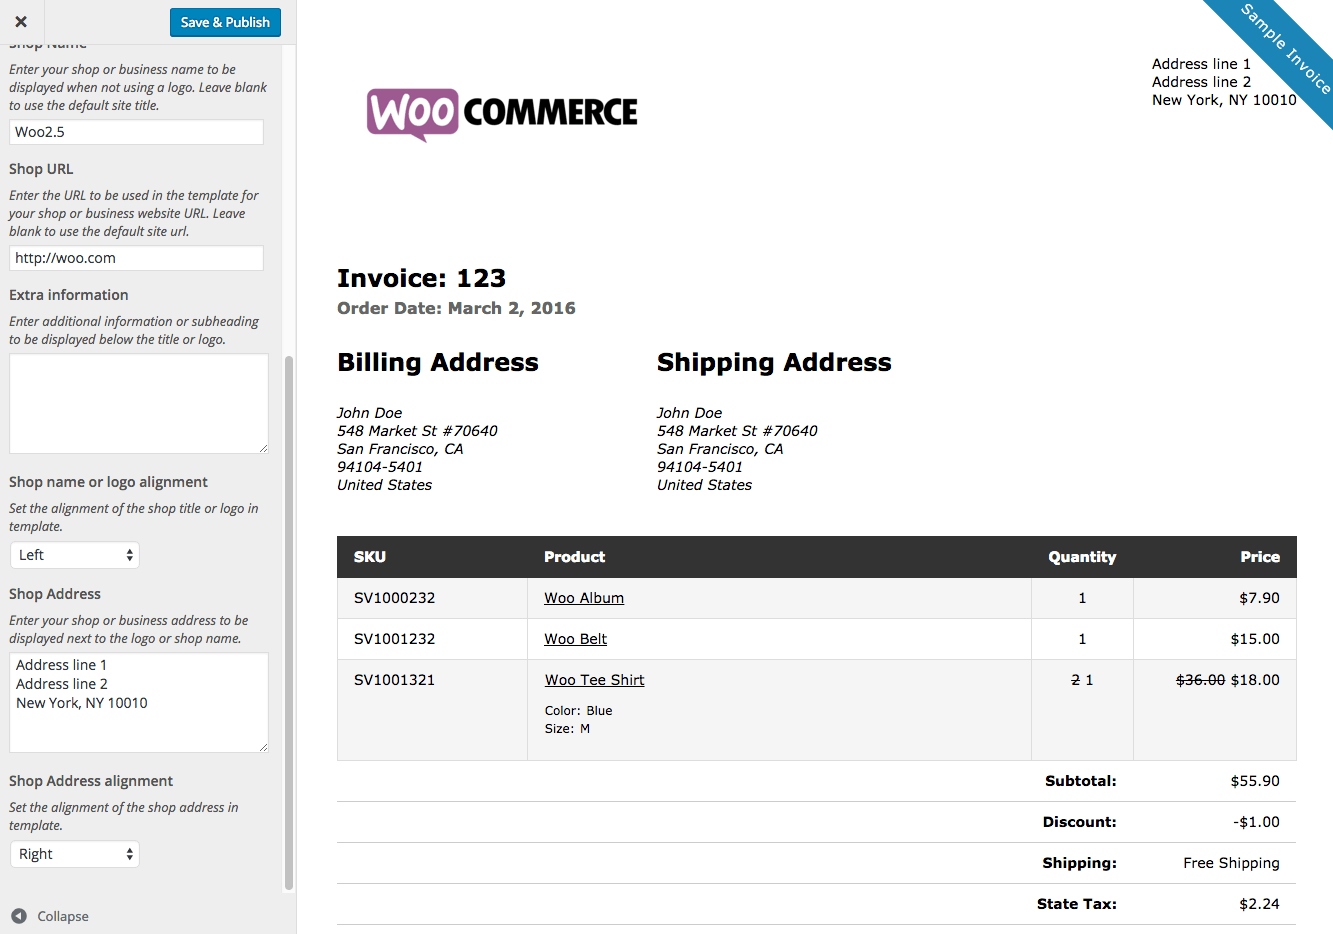 Shopdesignsus  Nice Woocommerce Print Invoices Amp Packing Lists  Woocommerce Docs With Lovely Woocommerce Print Invoices  Packing Lists Customizer With Cute Costco Receipt Also Delta Receipts In Addition Non Profit Donation Receipt And Receipt Software As Well As Bpa In Receipts Additionally Mobile Receipt Printer From Docswoocommercecom With Shopdesignsus  Lovely Woocommerce Print Invoices Amp Packing Lists  Woocommerce Docs With Cute Woocommerce Print Invoices  Packing Lists Customizer And Nice Costco Receipt Also Delta Receipts In Addition Non Profit Donation Receipt From Docswoocommercecom